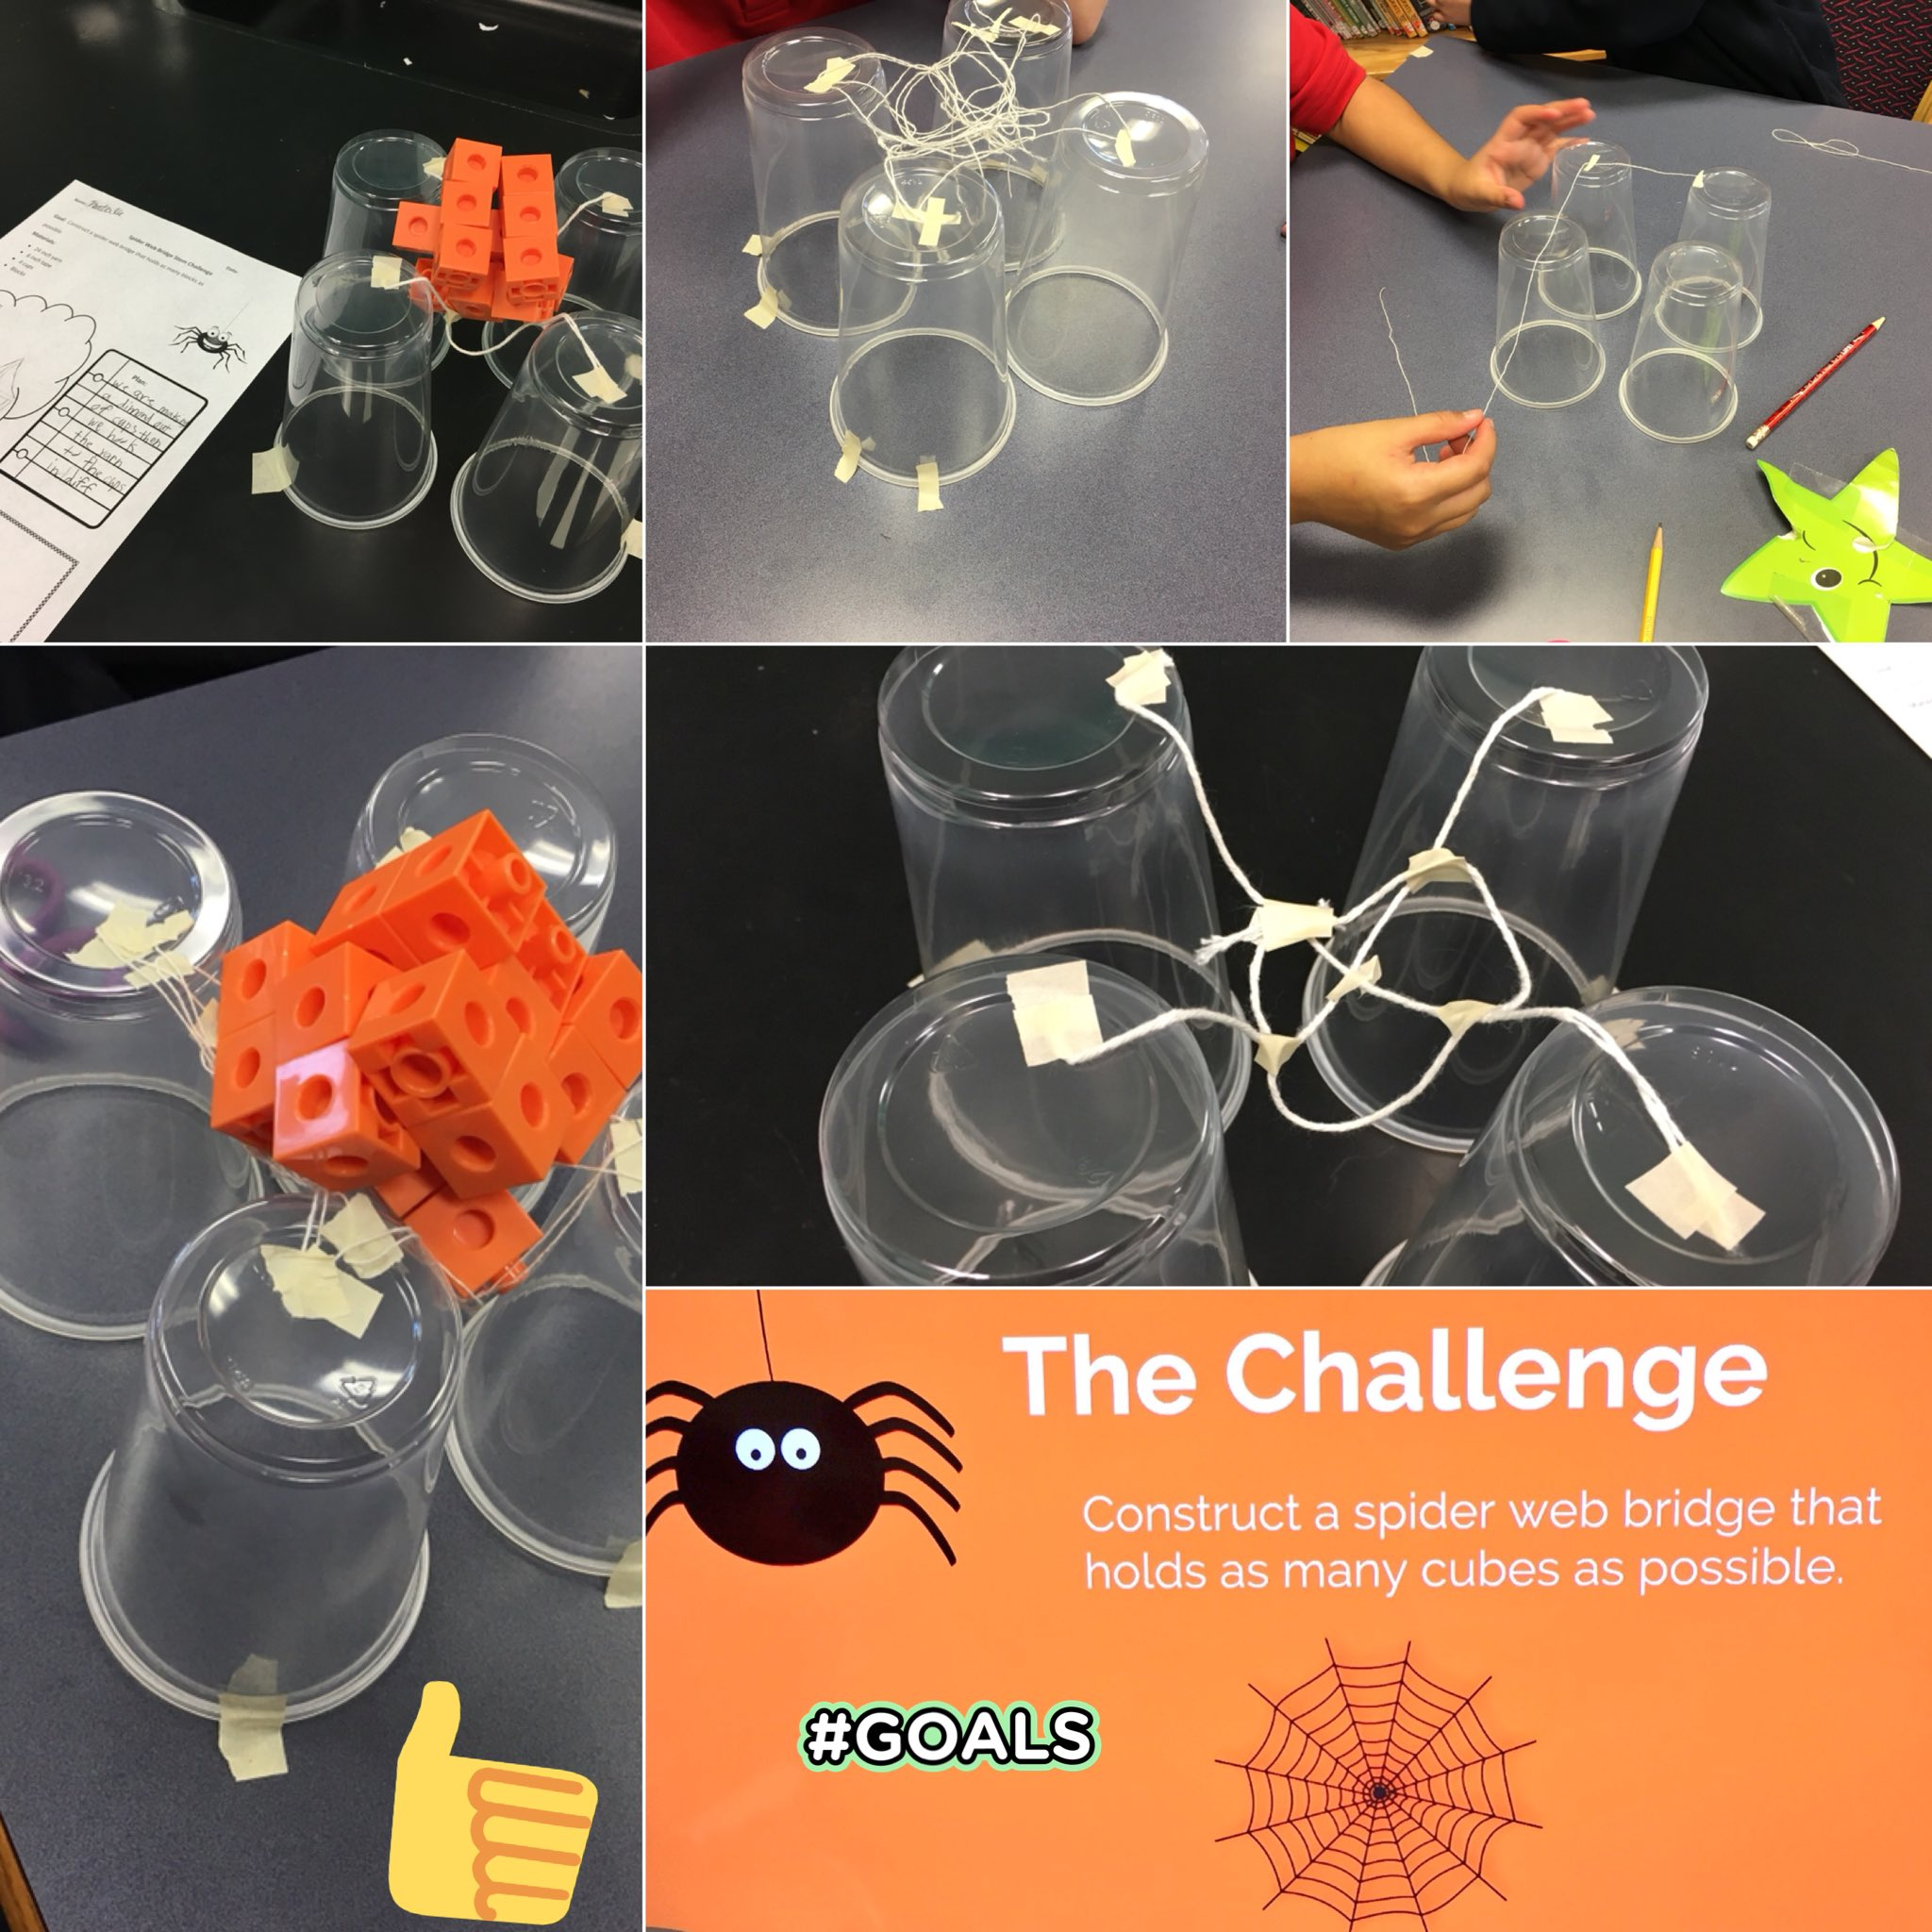 Murat Konac M Ed On Twitter Spider Web Bridge Stem Challenge Create A Spider Web Bridge Out Of Cups Tape And String To Hold As Many Blocks As Possible Stem Stemforall Halloween Gifted